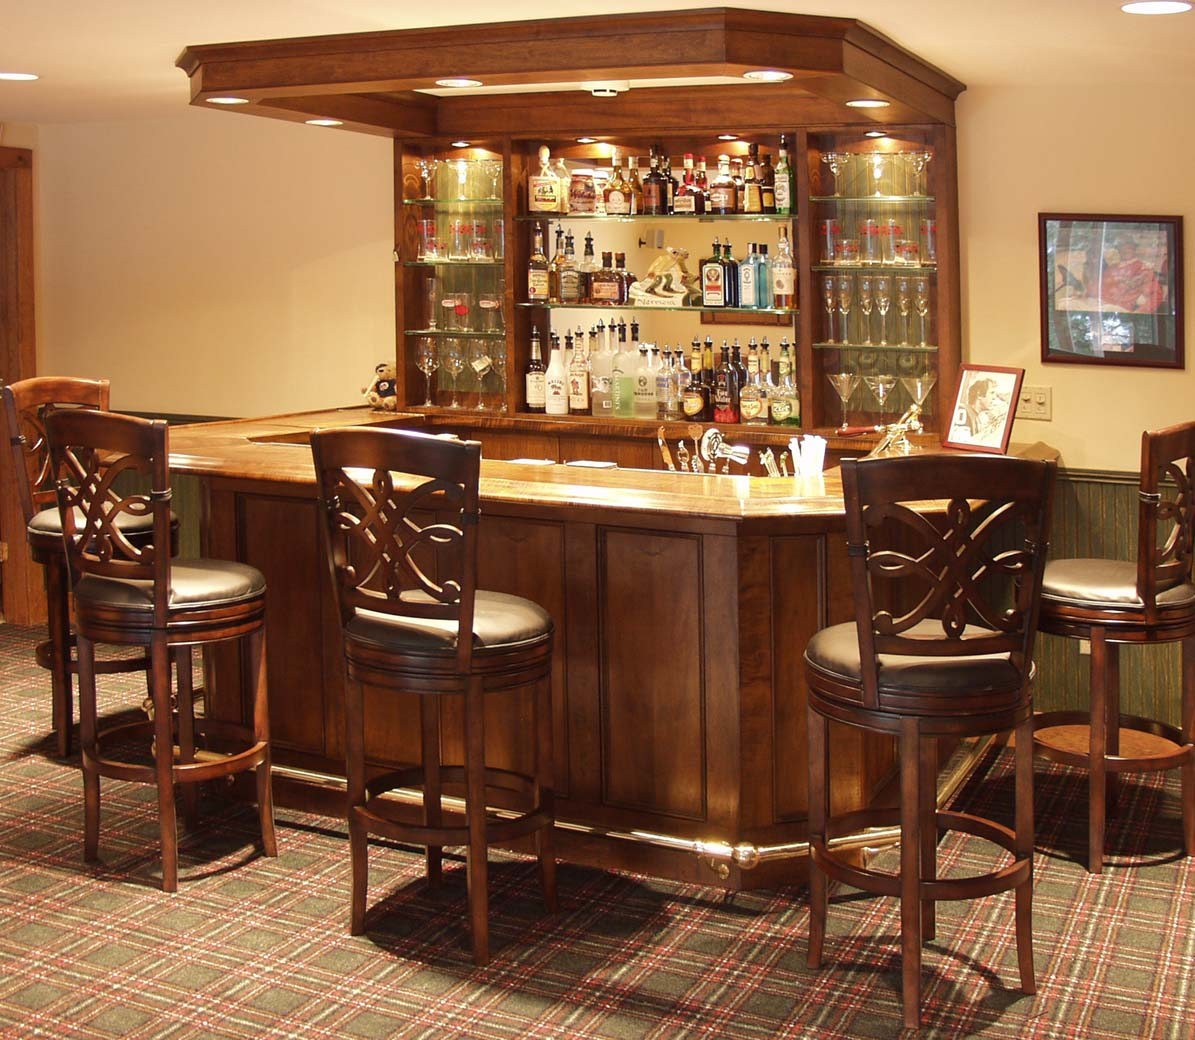 Dorset Custom Furniture A Woodworkers Photo Journal The Spaces We Make: home pub bar furniture